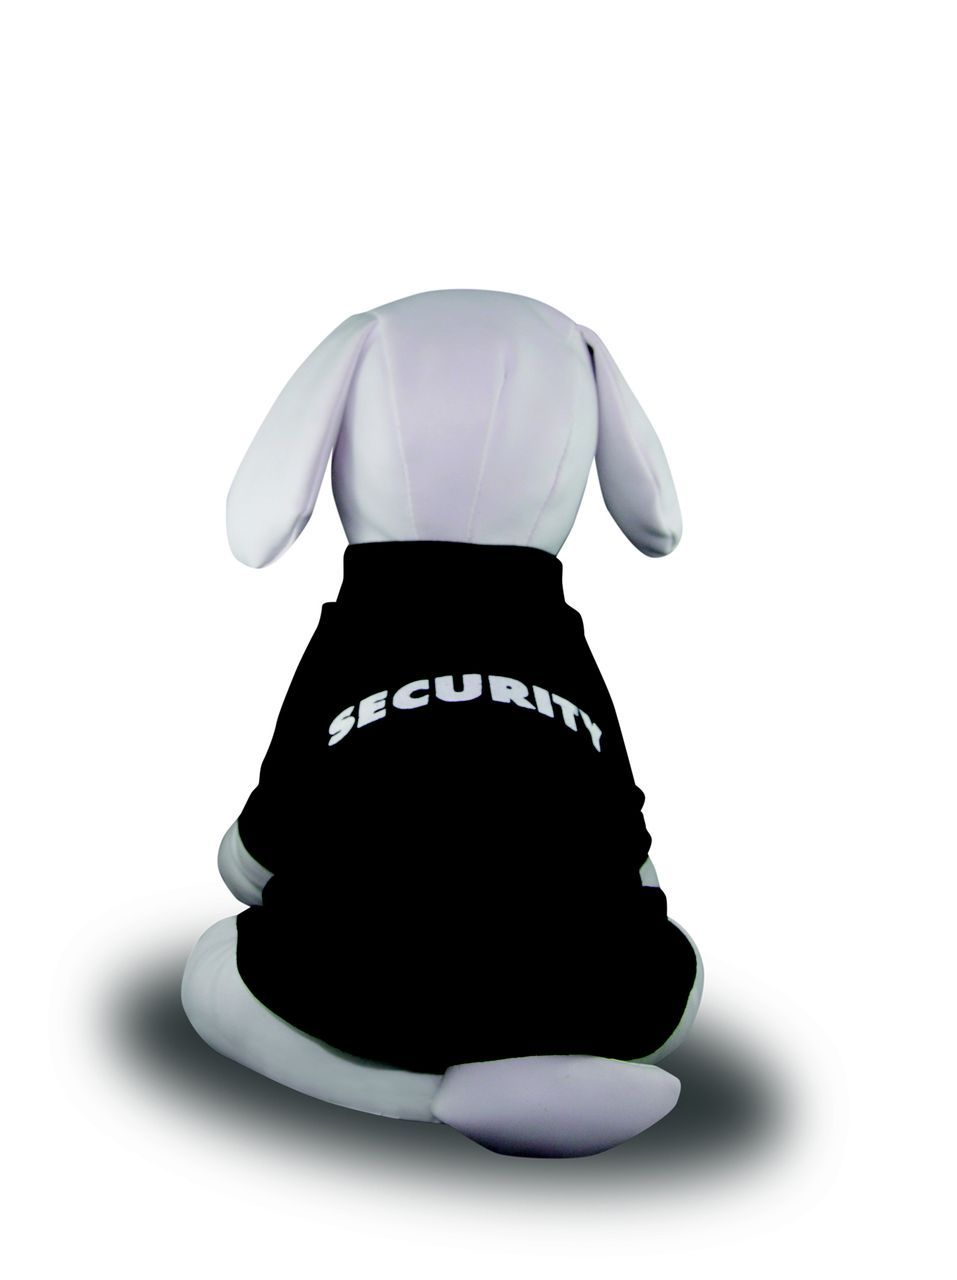 Security Shirts For Dogs photo - 2